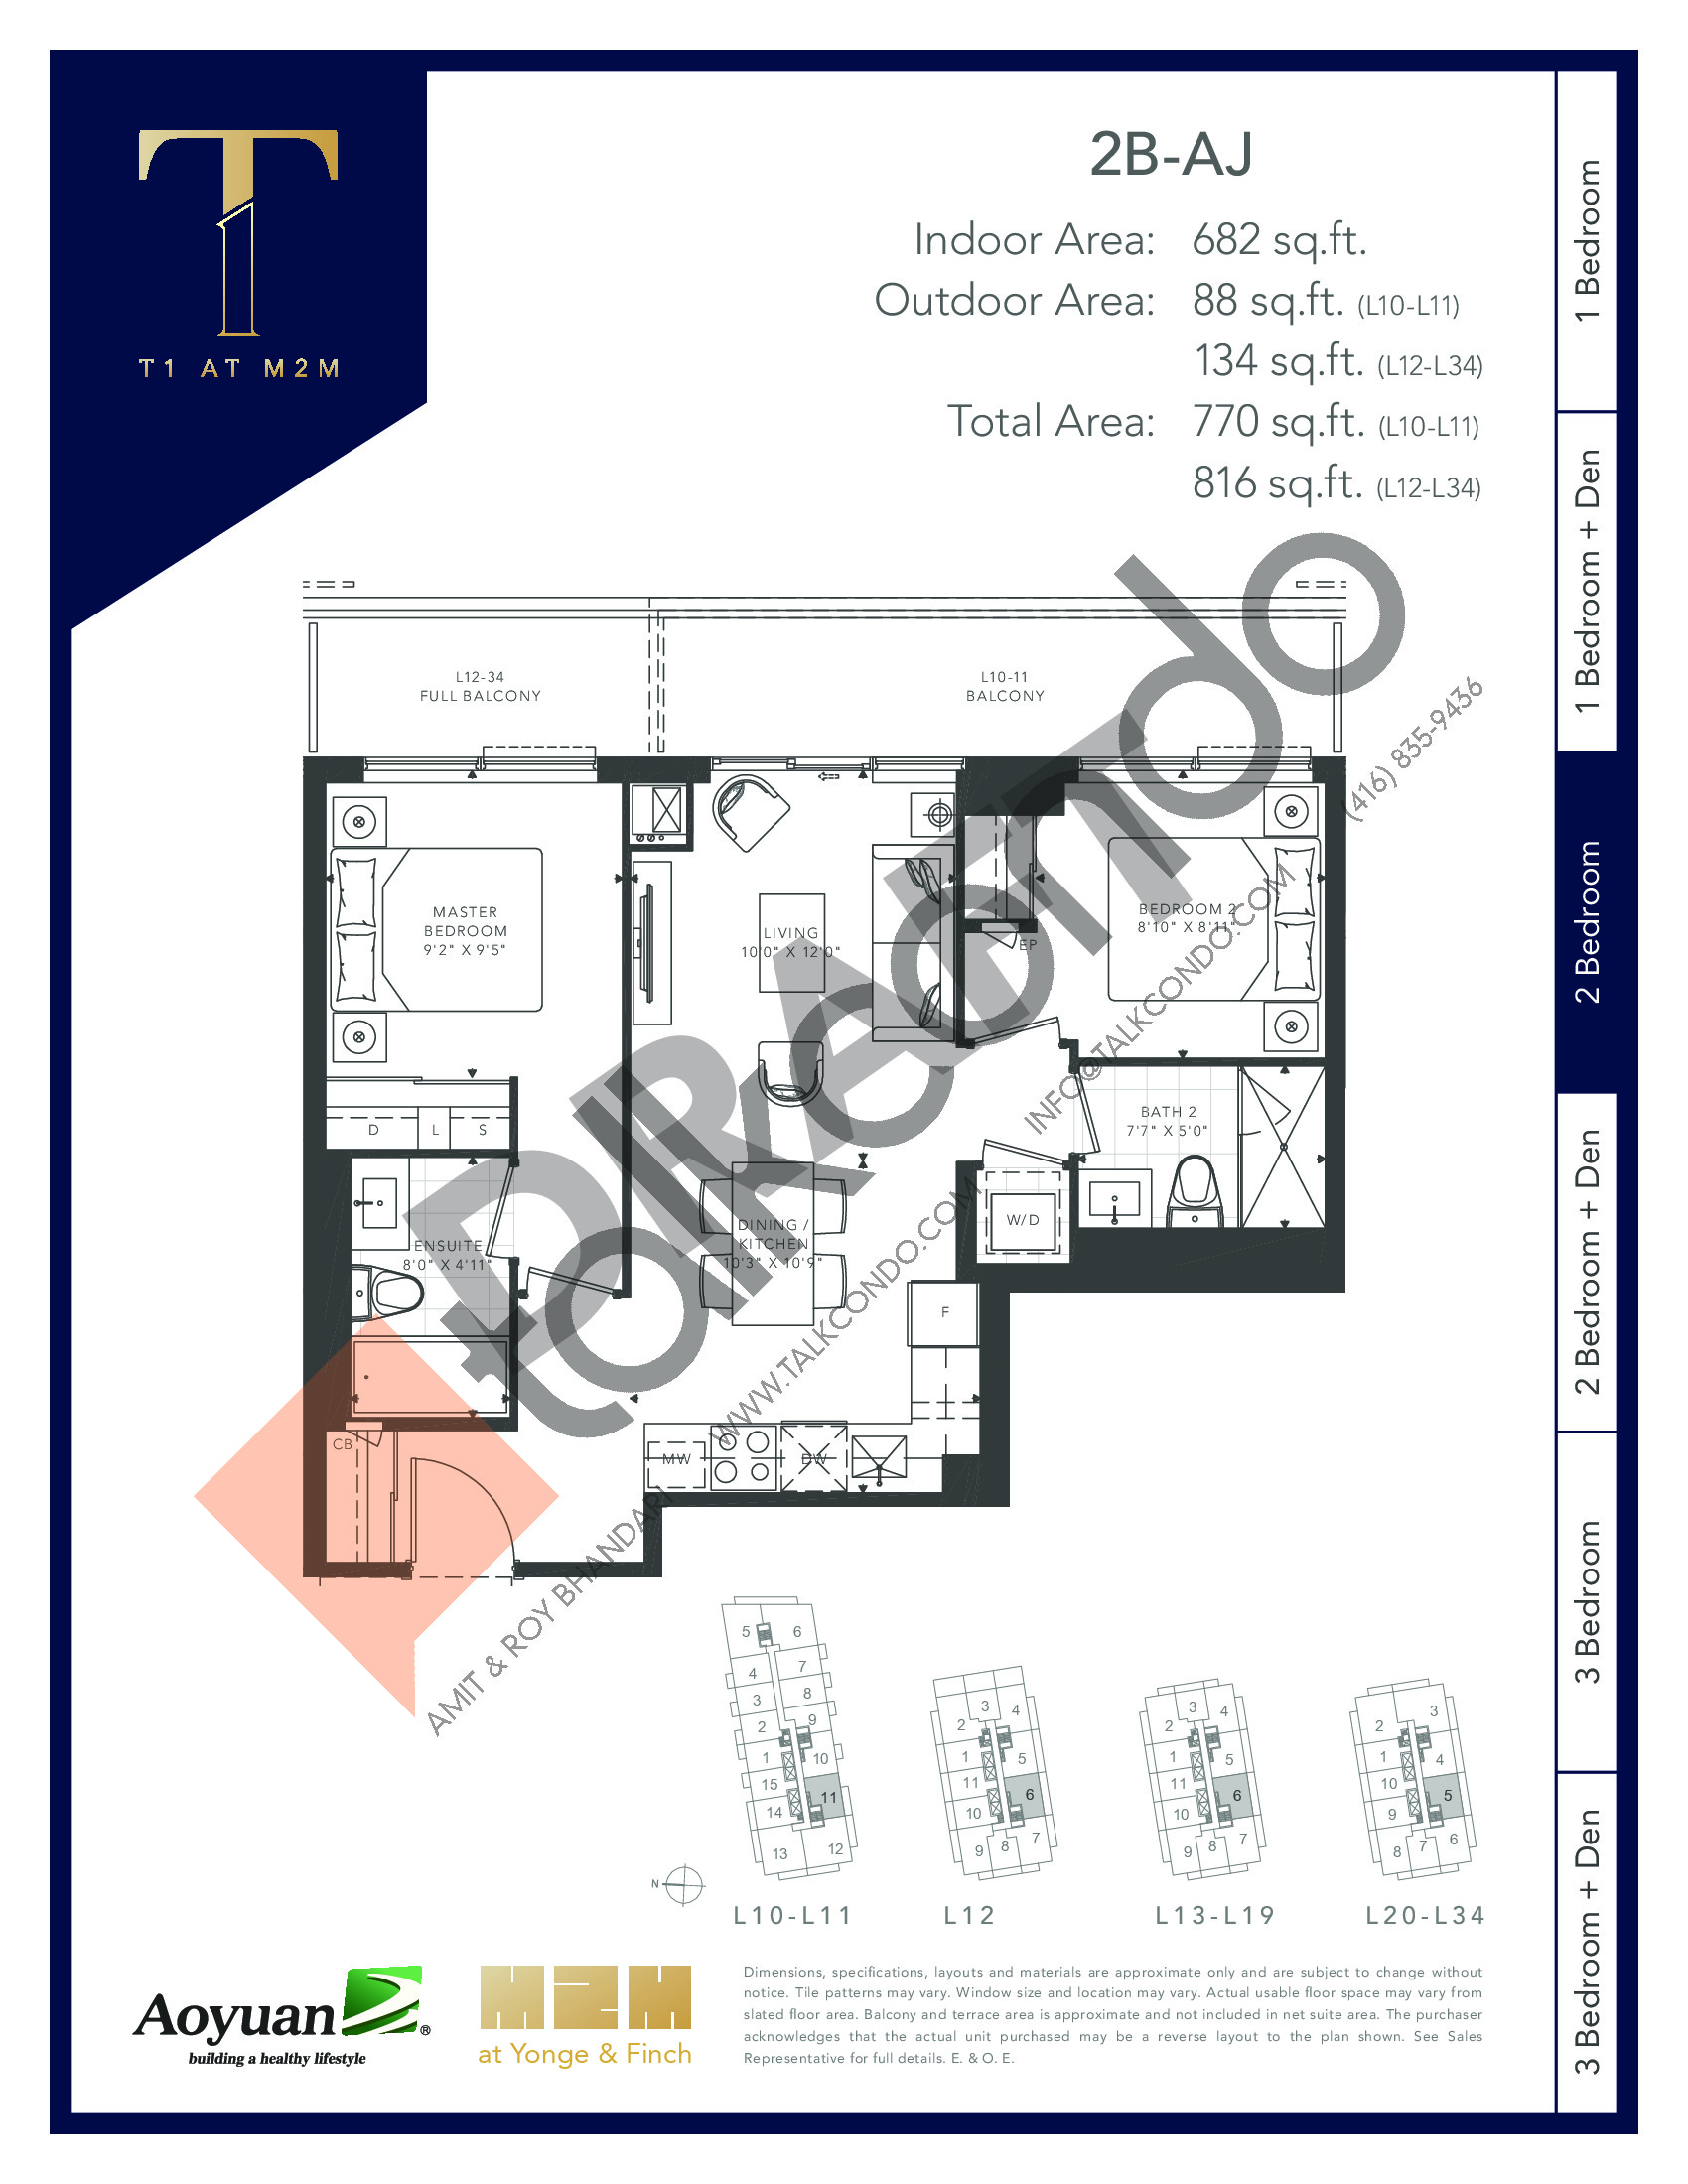 2B-AJ (Tower) Floor Plan at T1 at M2M Condos - 682 sq.ft